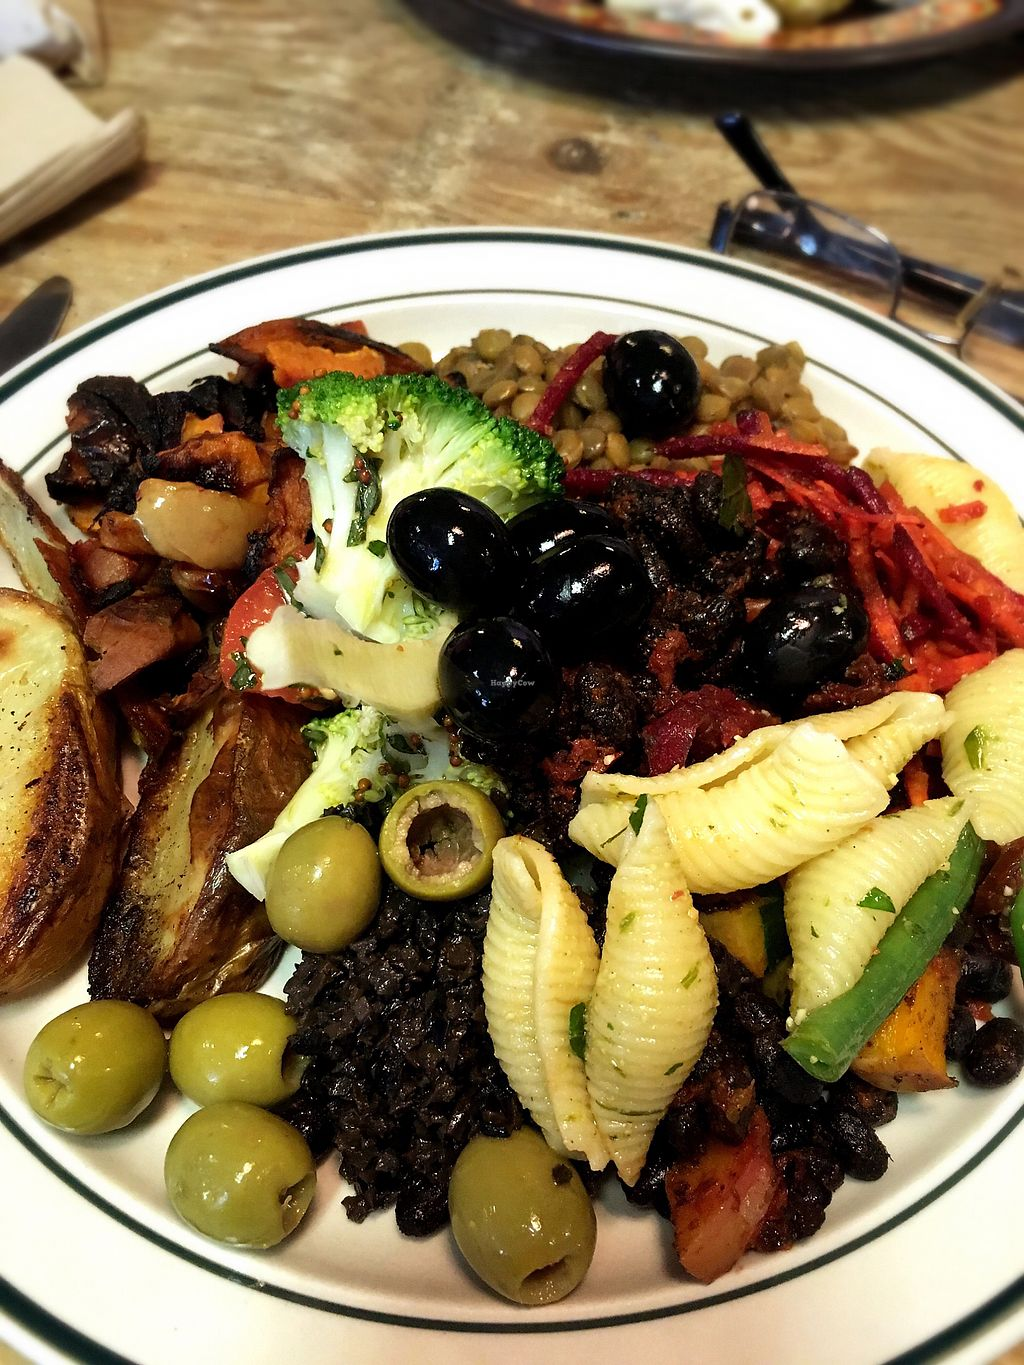 """Photo of Seeds to Totnes  by <a href=""""/members/profile/FranMcgarryArtist"""">FranMcgarryArtist</a> <br/>Super Delicious Food  <br/> August 24, 2017  - <a href='/contact/abuse/image/55307/296639'>Report</a>"""